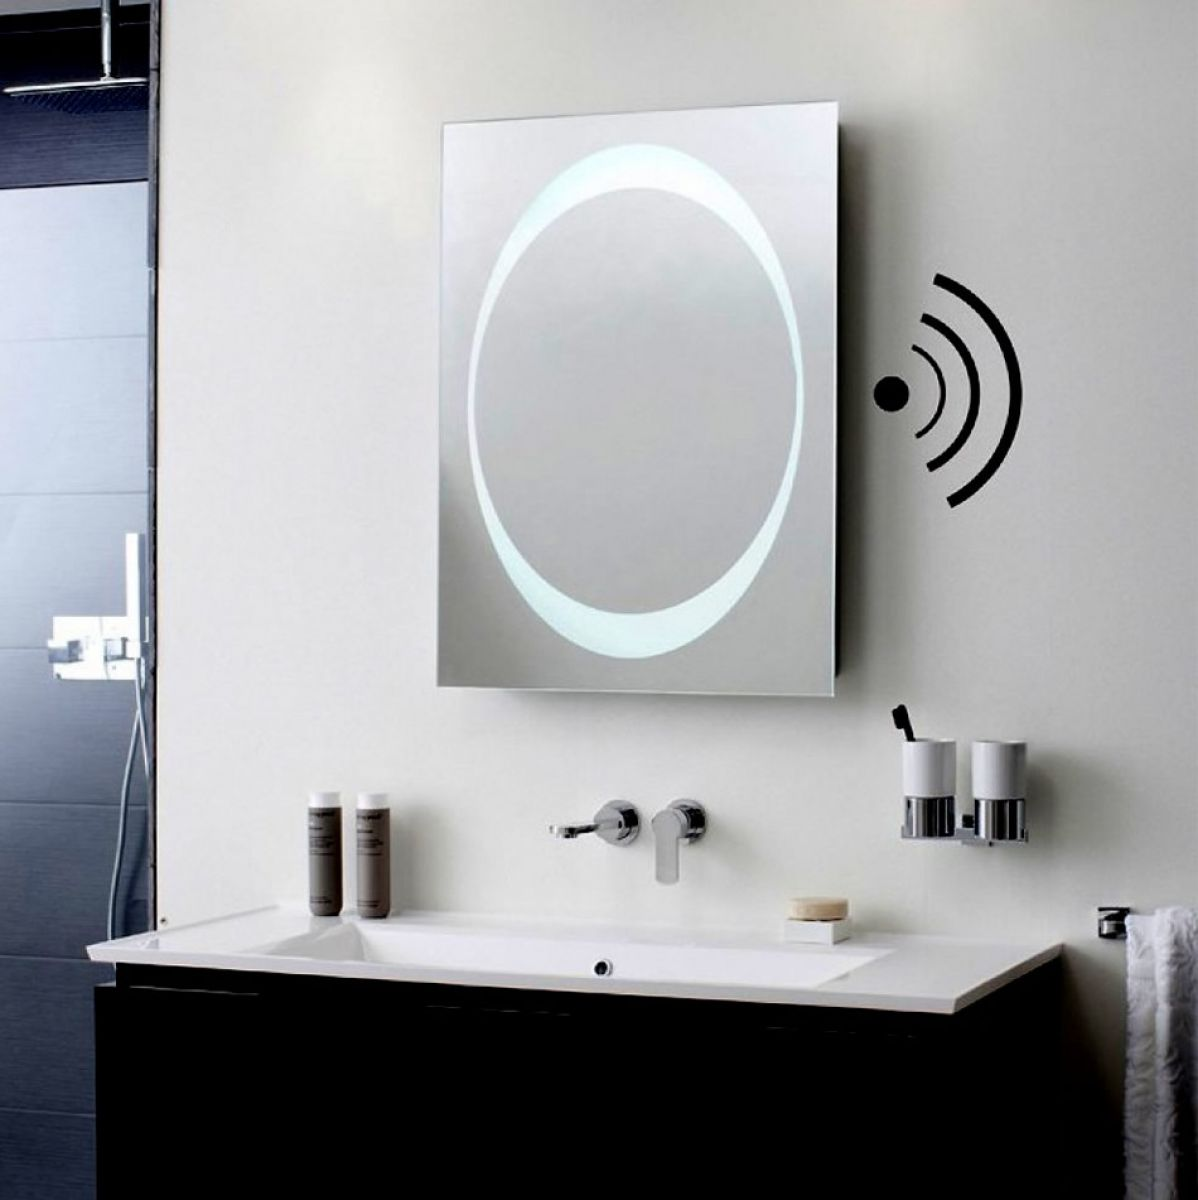 Bauhaus Revive 10 LED Mirror with Bluetooth Speakers  UK Bathrooms